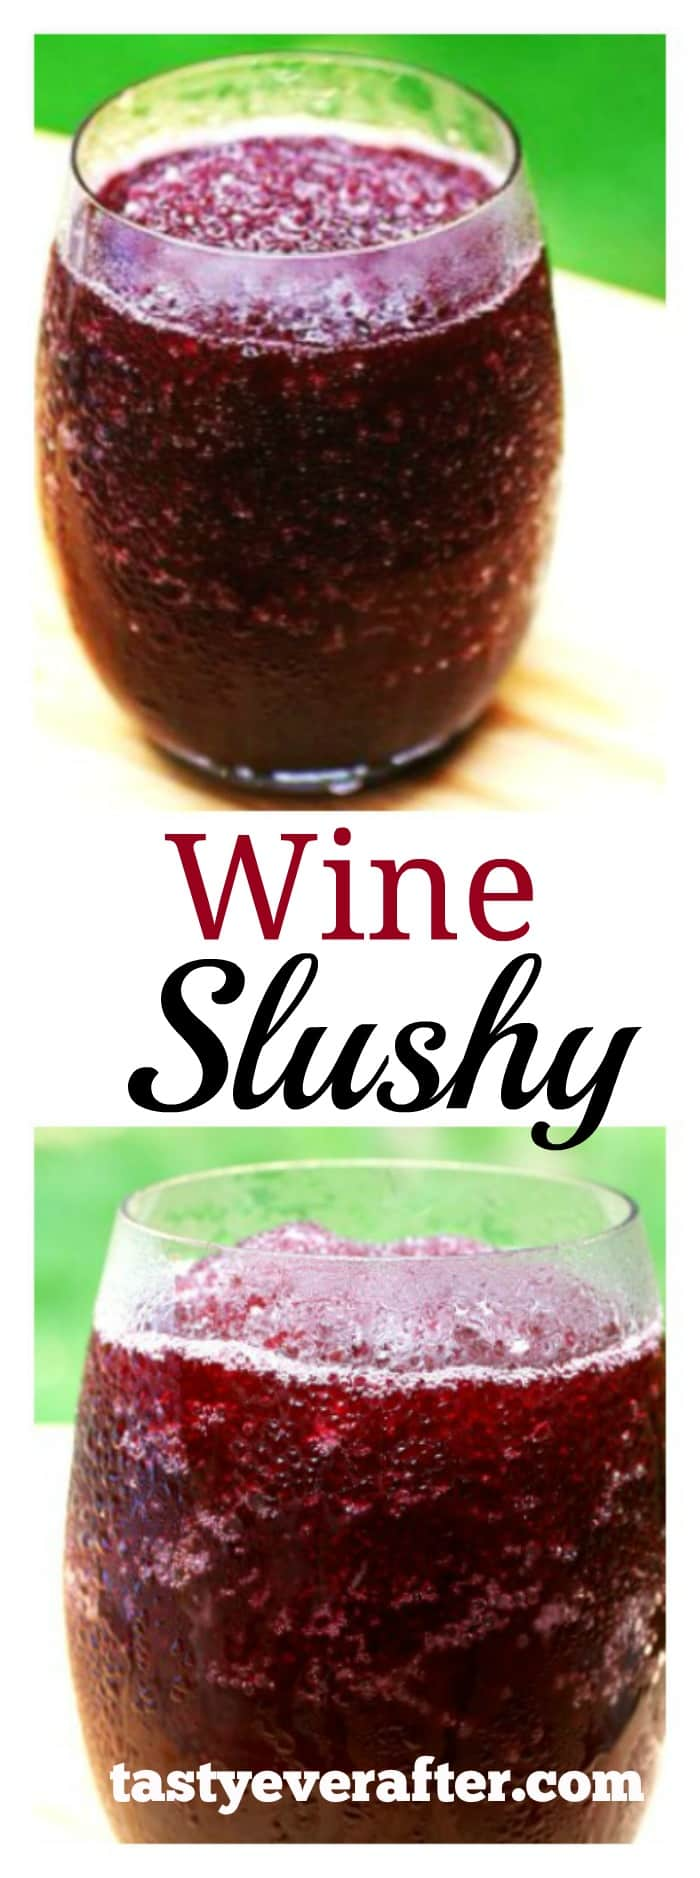 wineslushypinterest - Wine Slushy